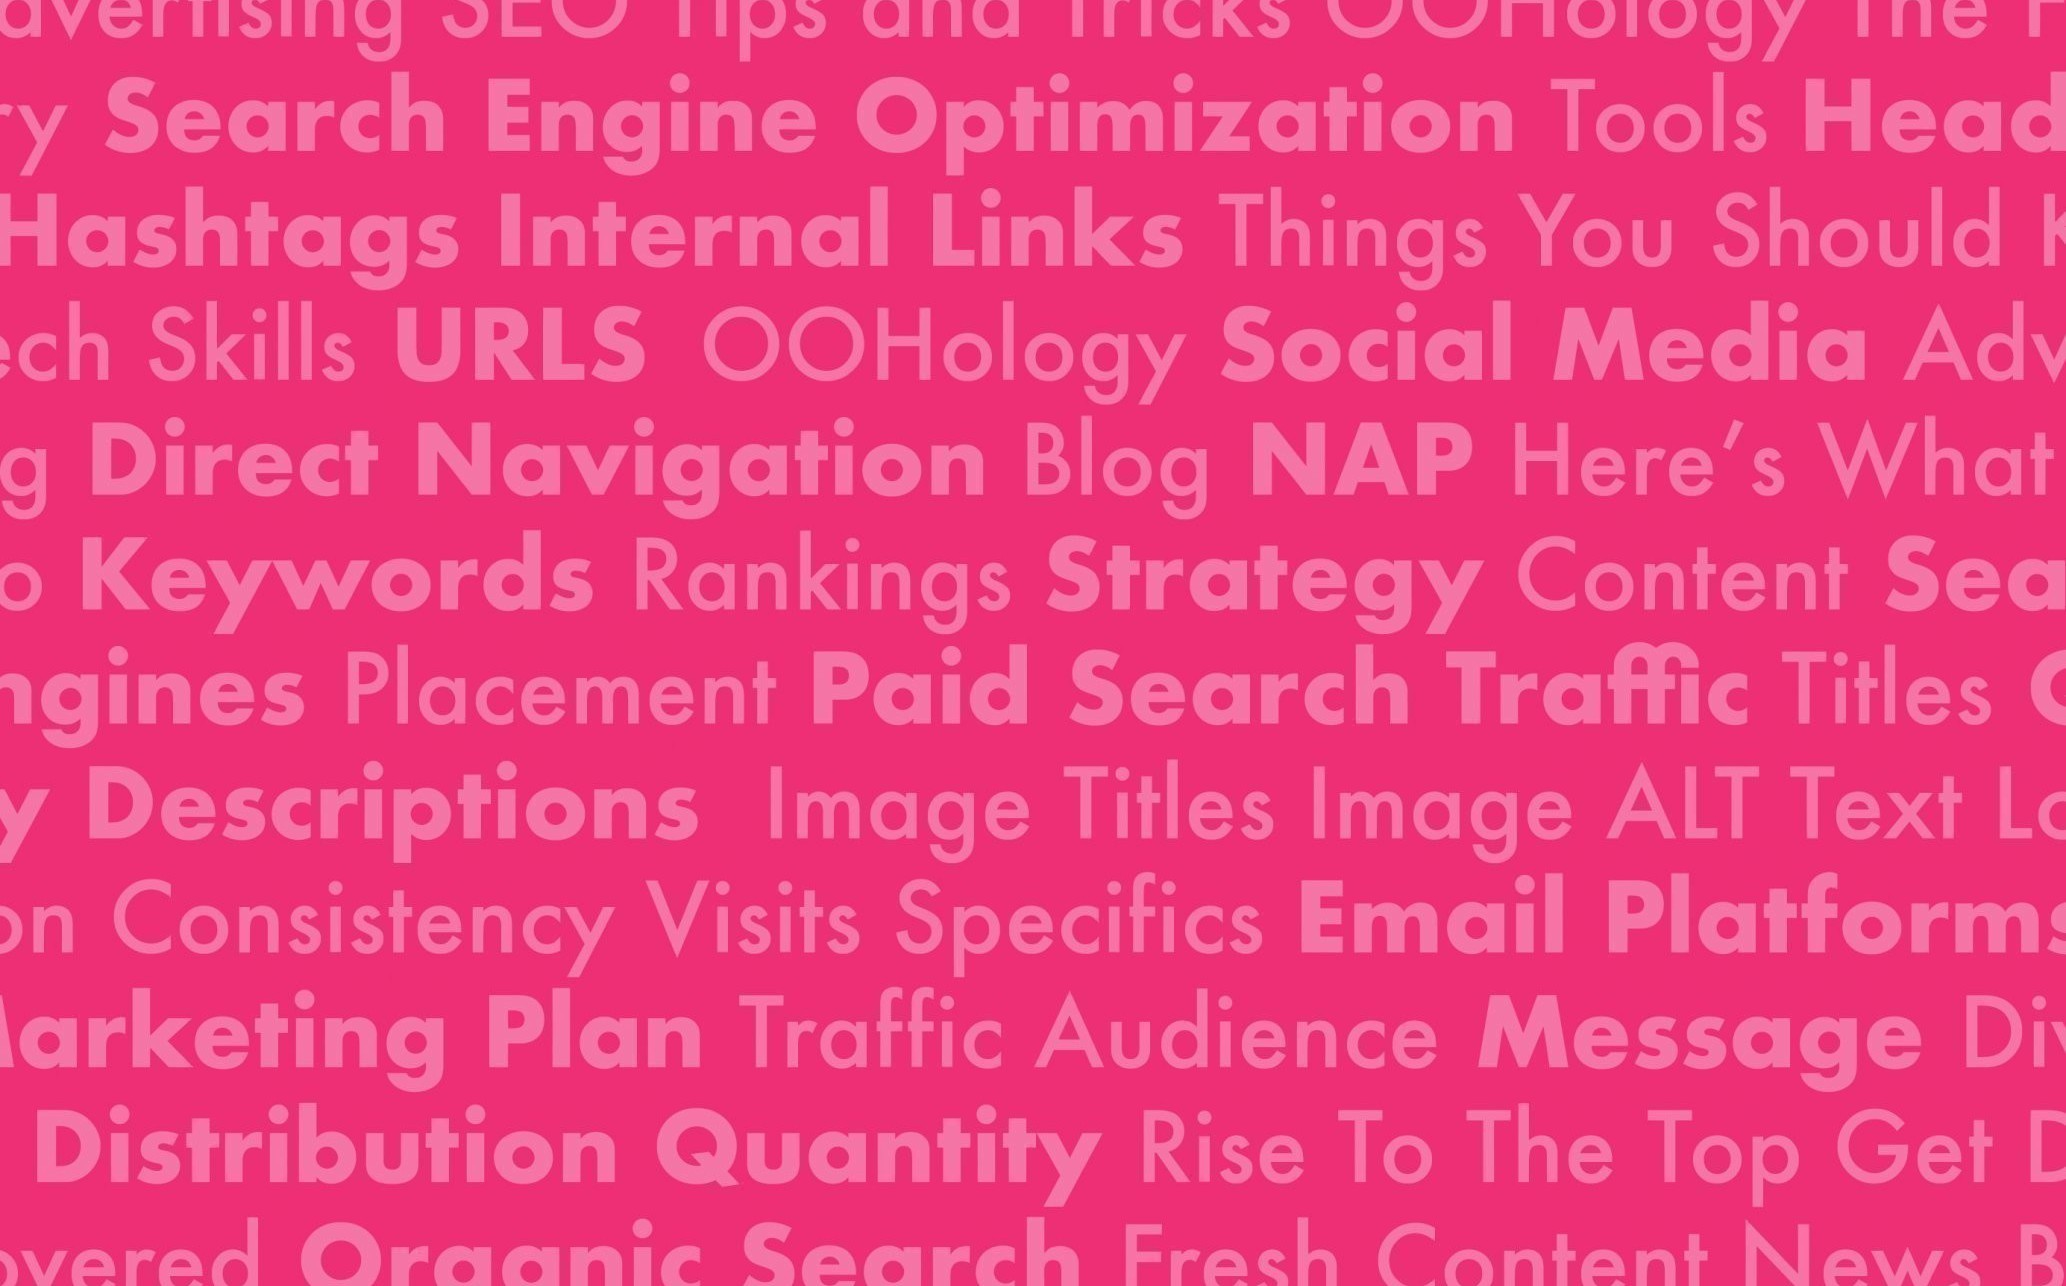 SEO Isn't Just For Websites: Basic Strategy For Multi-Channel Platforms